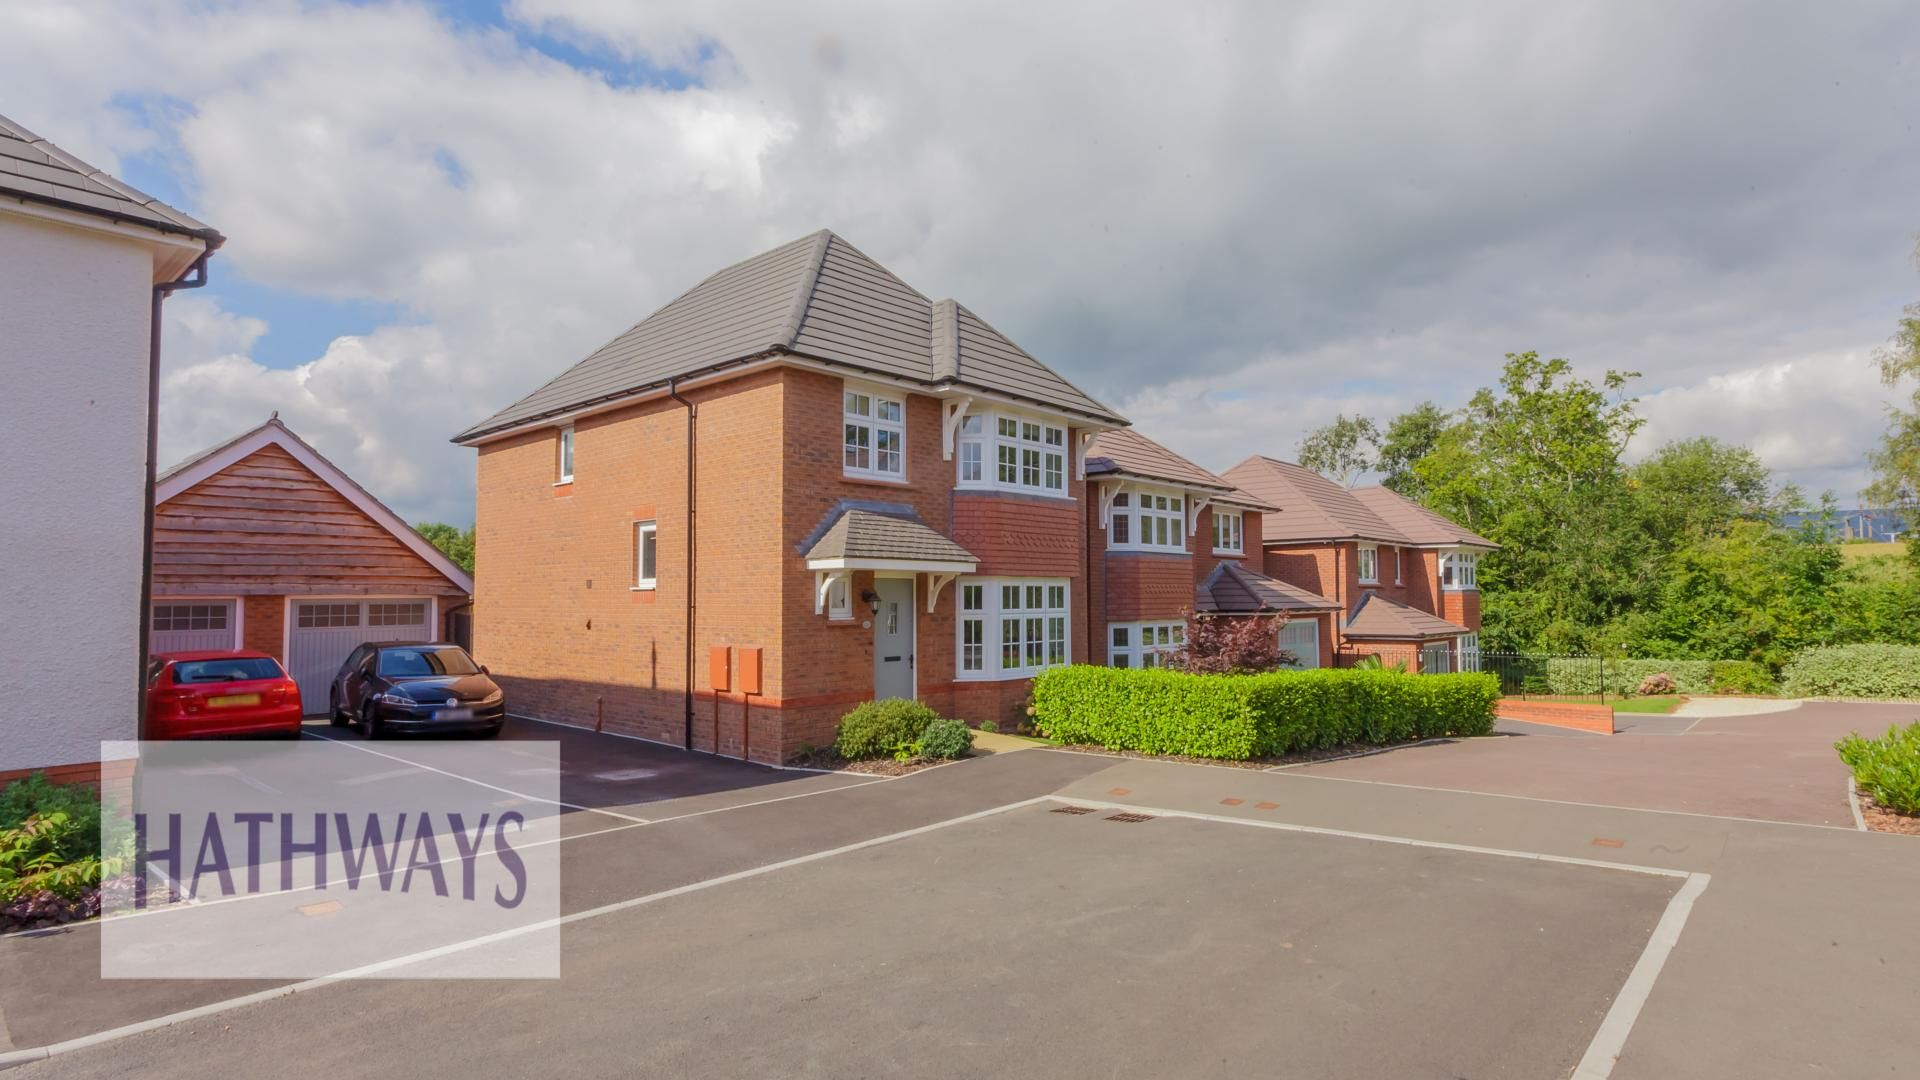 4 bed house for sale in The Maltings  - Property Image 1